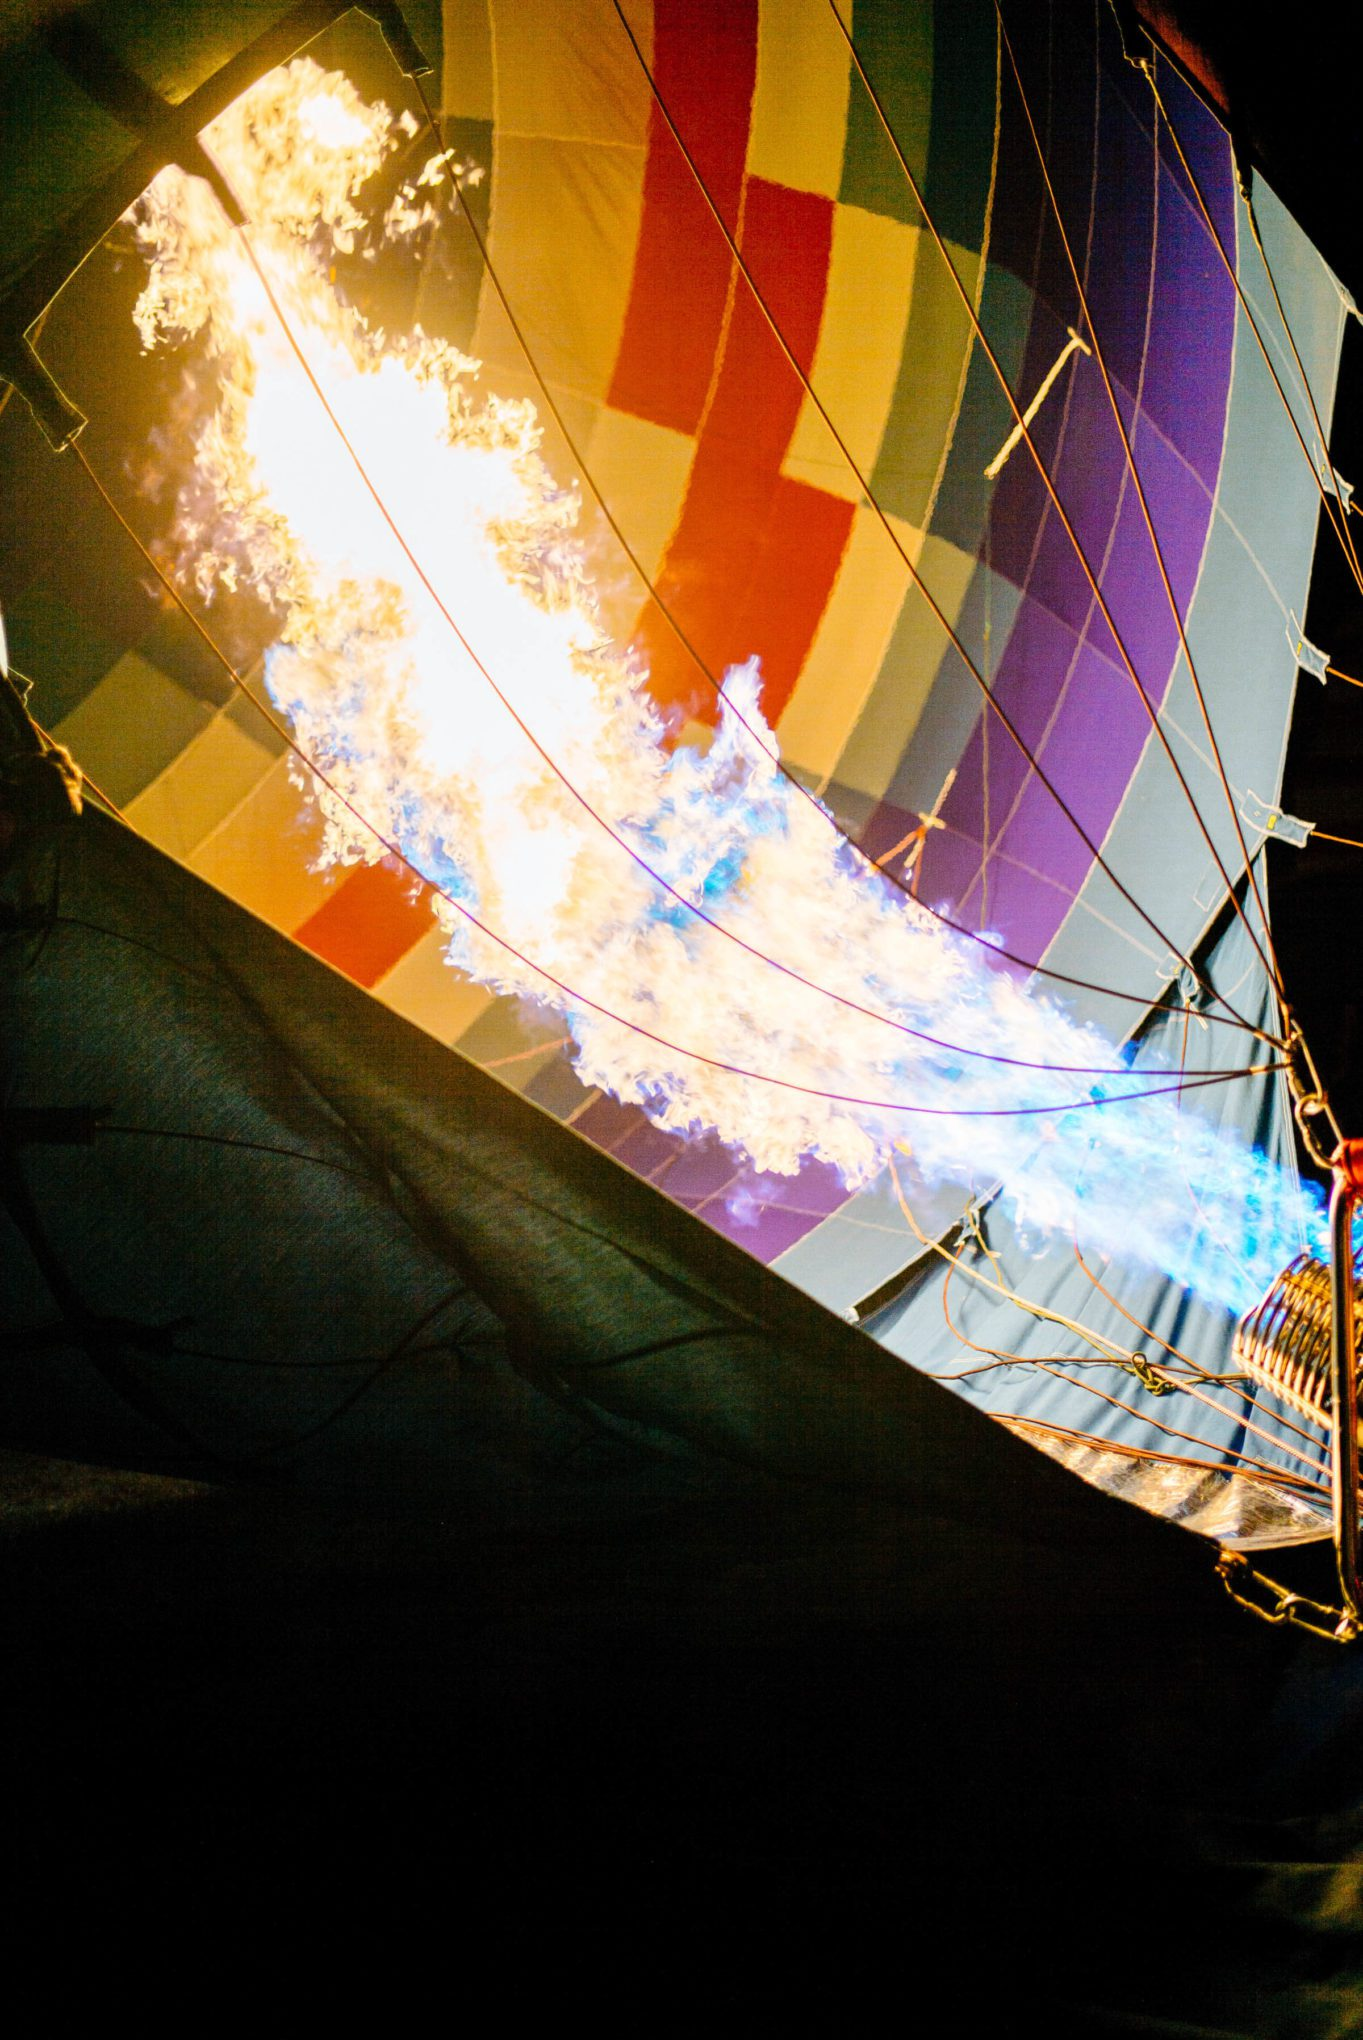 Visit or plan your trip around the Albuquerque Balloon festival